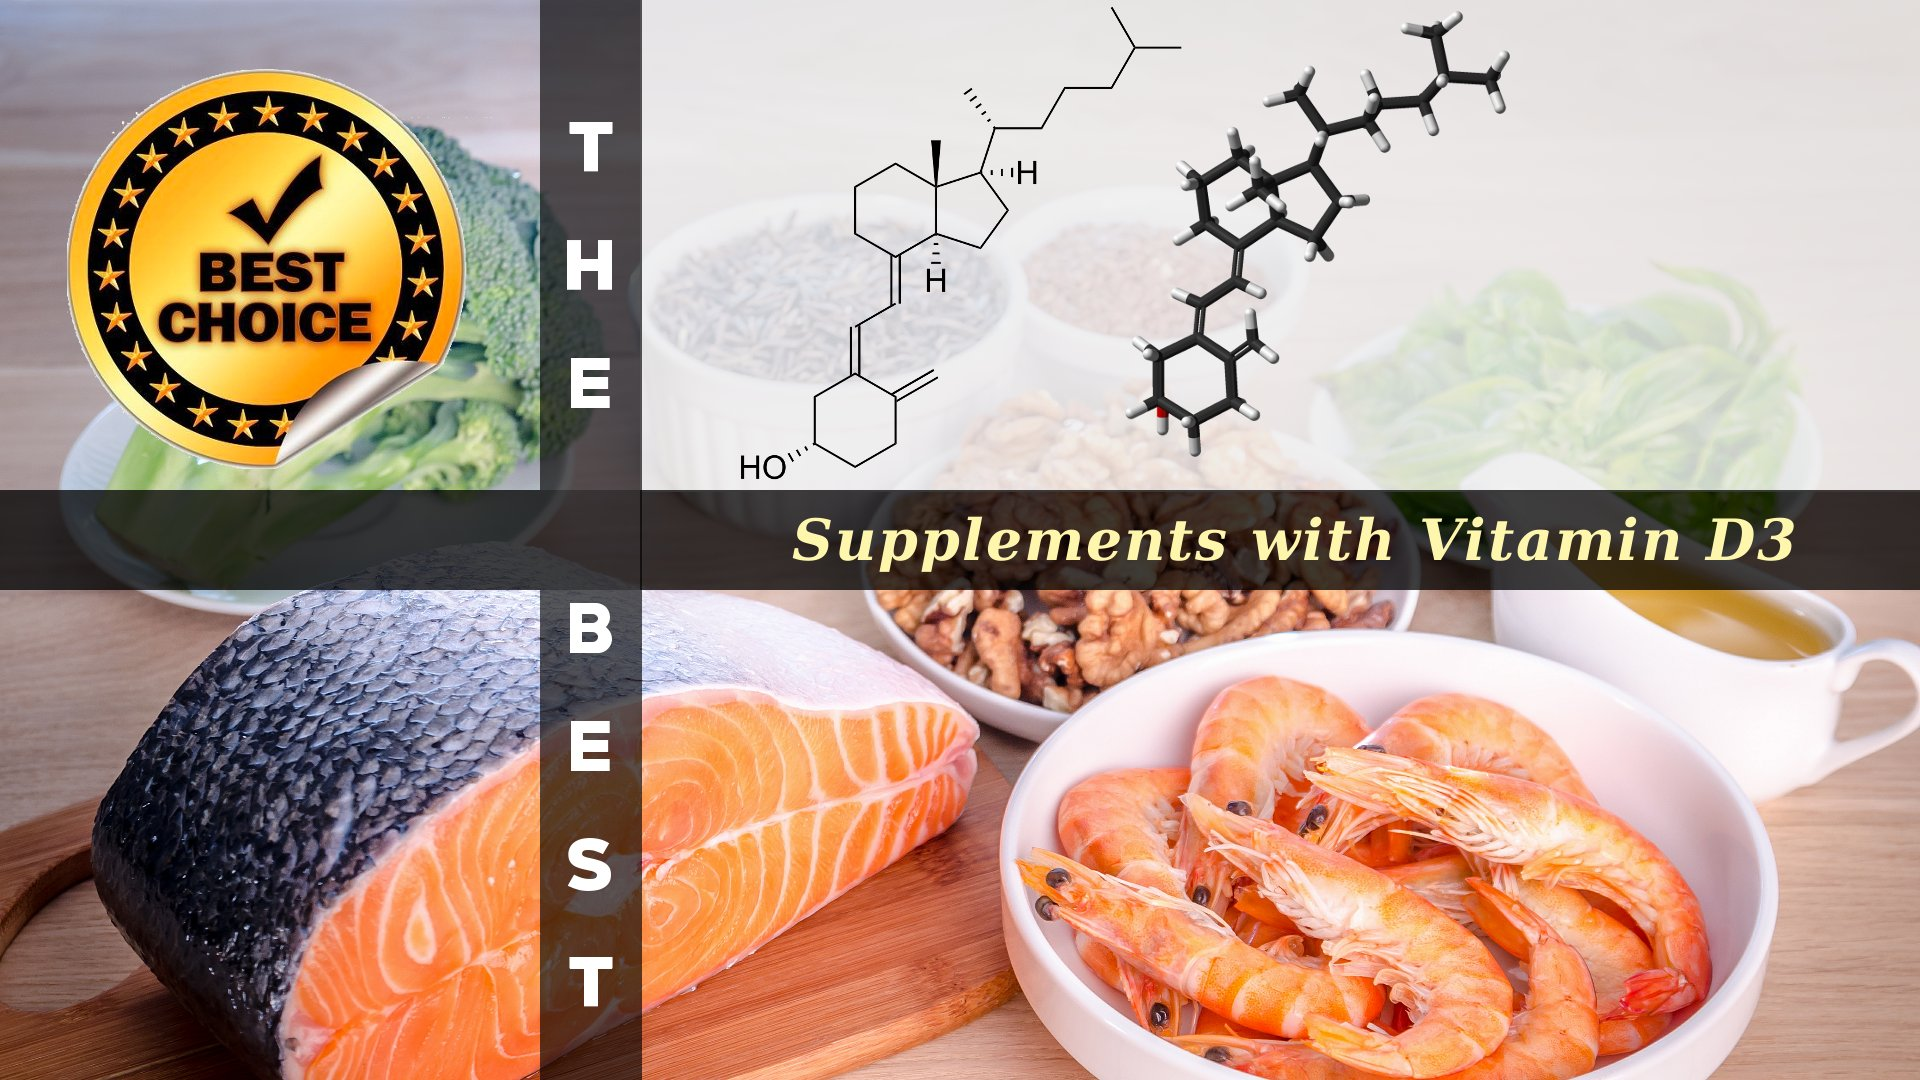 The Supplements with Vitamin D3